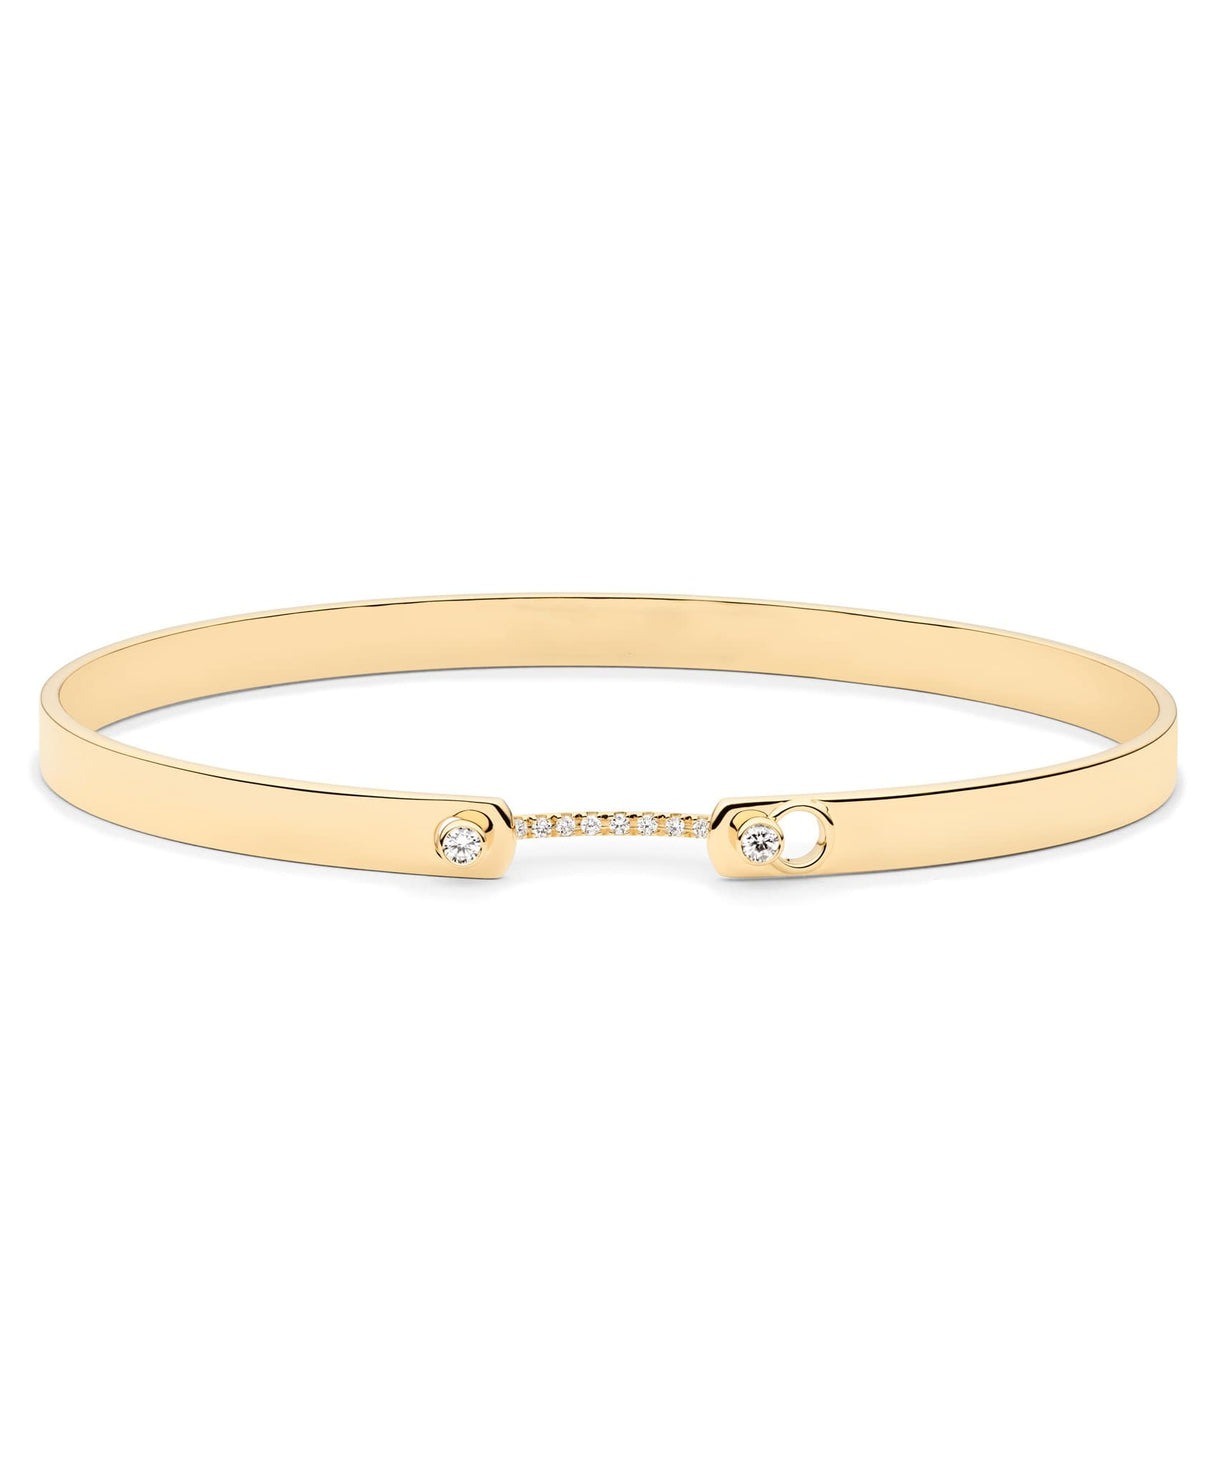 Business Meeting Mood Bangle | 18k Gold Oval Bangle Flat View